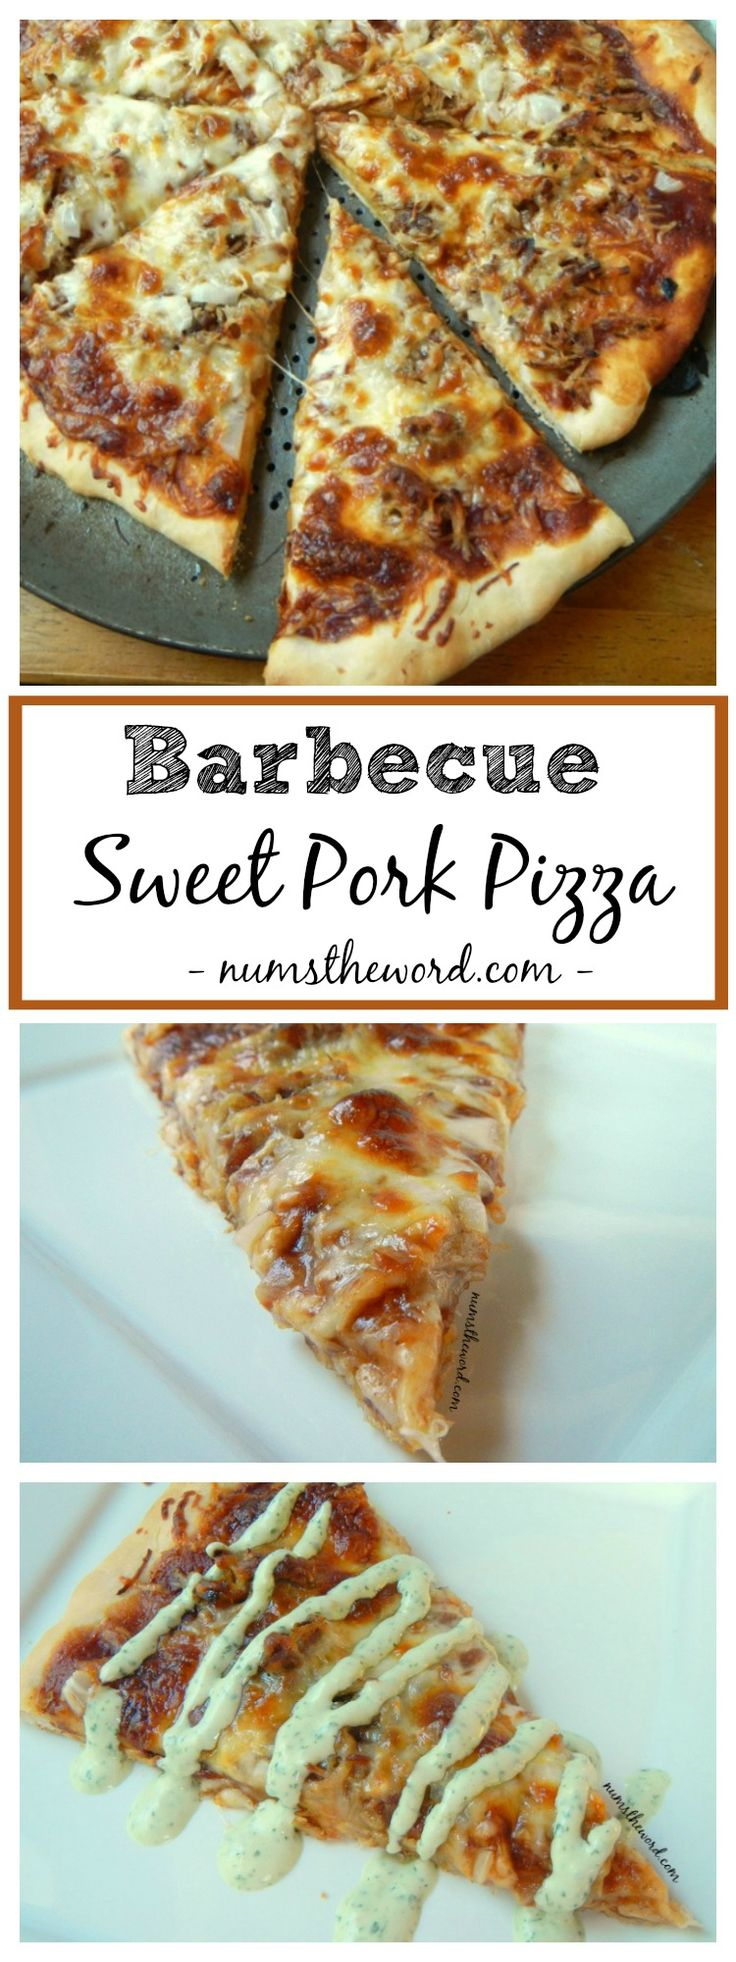 Barbecue Sweet Pork Pizza is a kid friendly easy meal everyone will love. This pizza crust takes only 15 minutes to make and the pizza is a great way to use up leftover pulled pork!